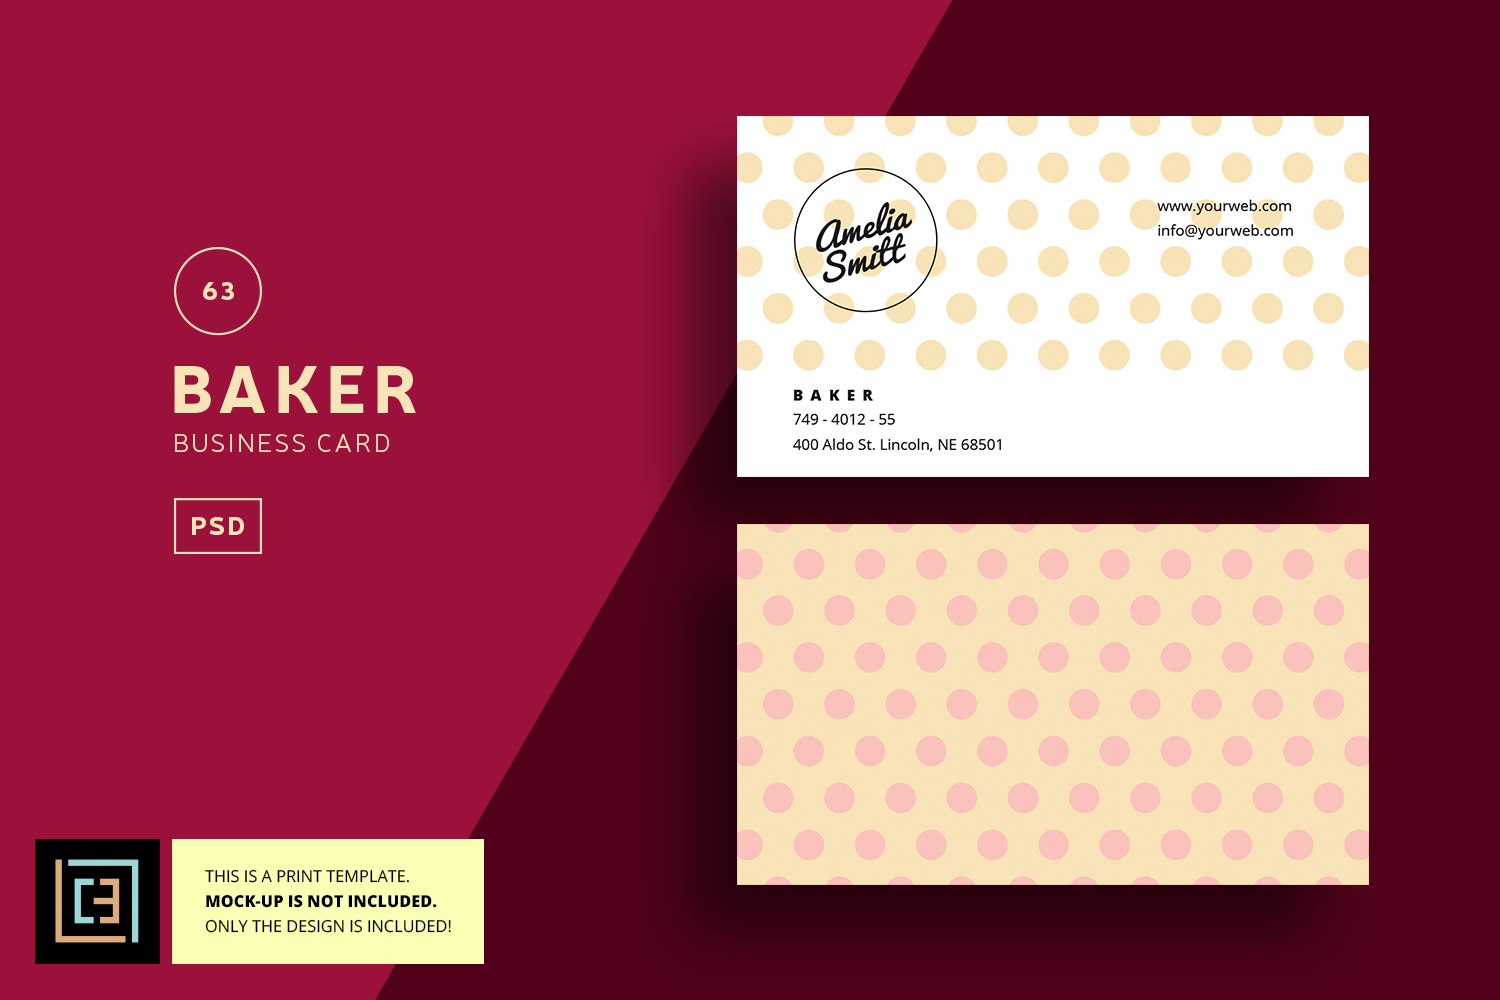 Baker business card bc063 by cooledit design bundles baker business card bc063 example image 1 reheart Choice Image